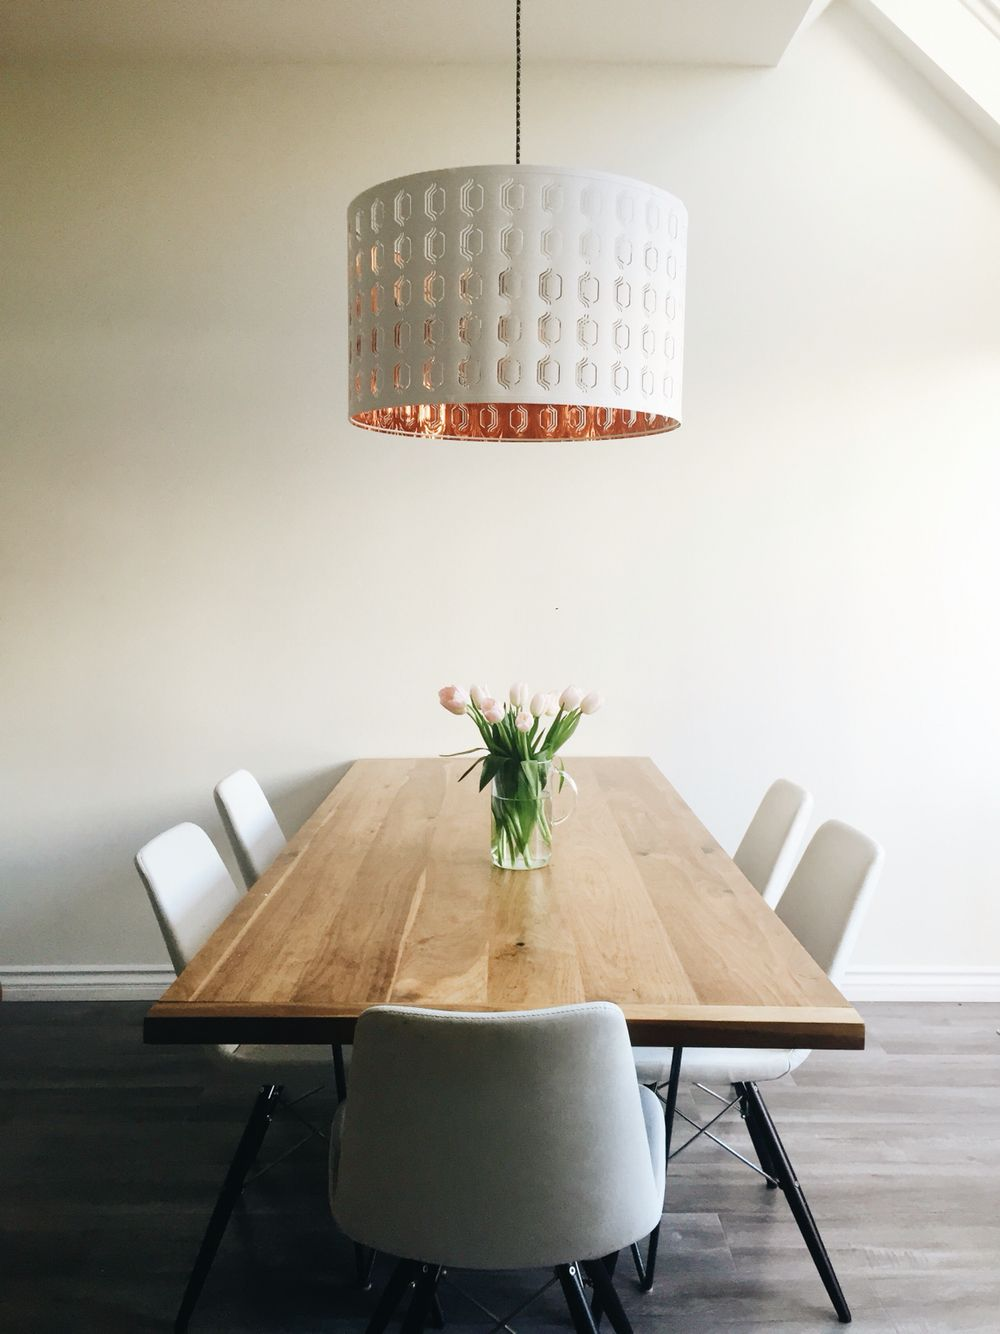 Minimalist Dining Room With Ikea Pendant Light In Copper And White